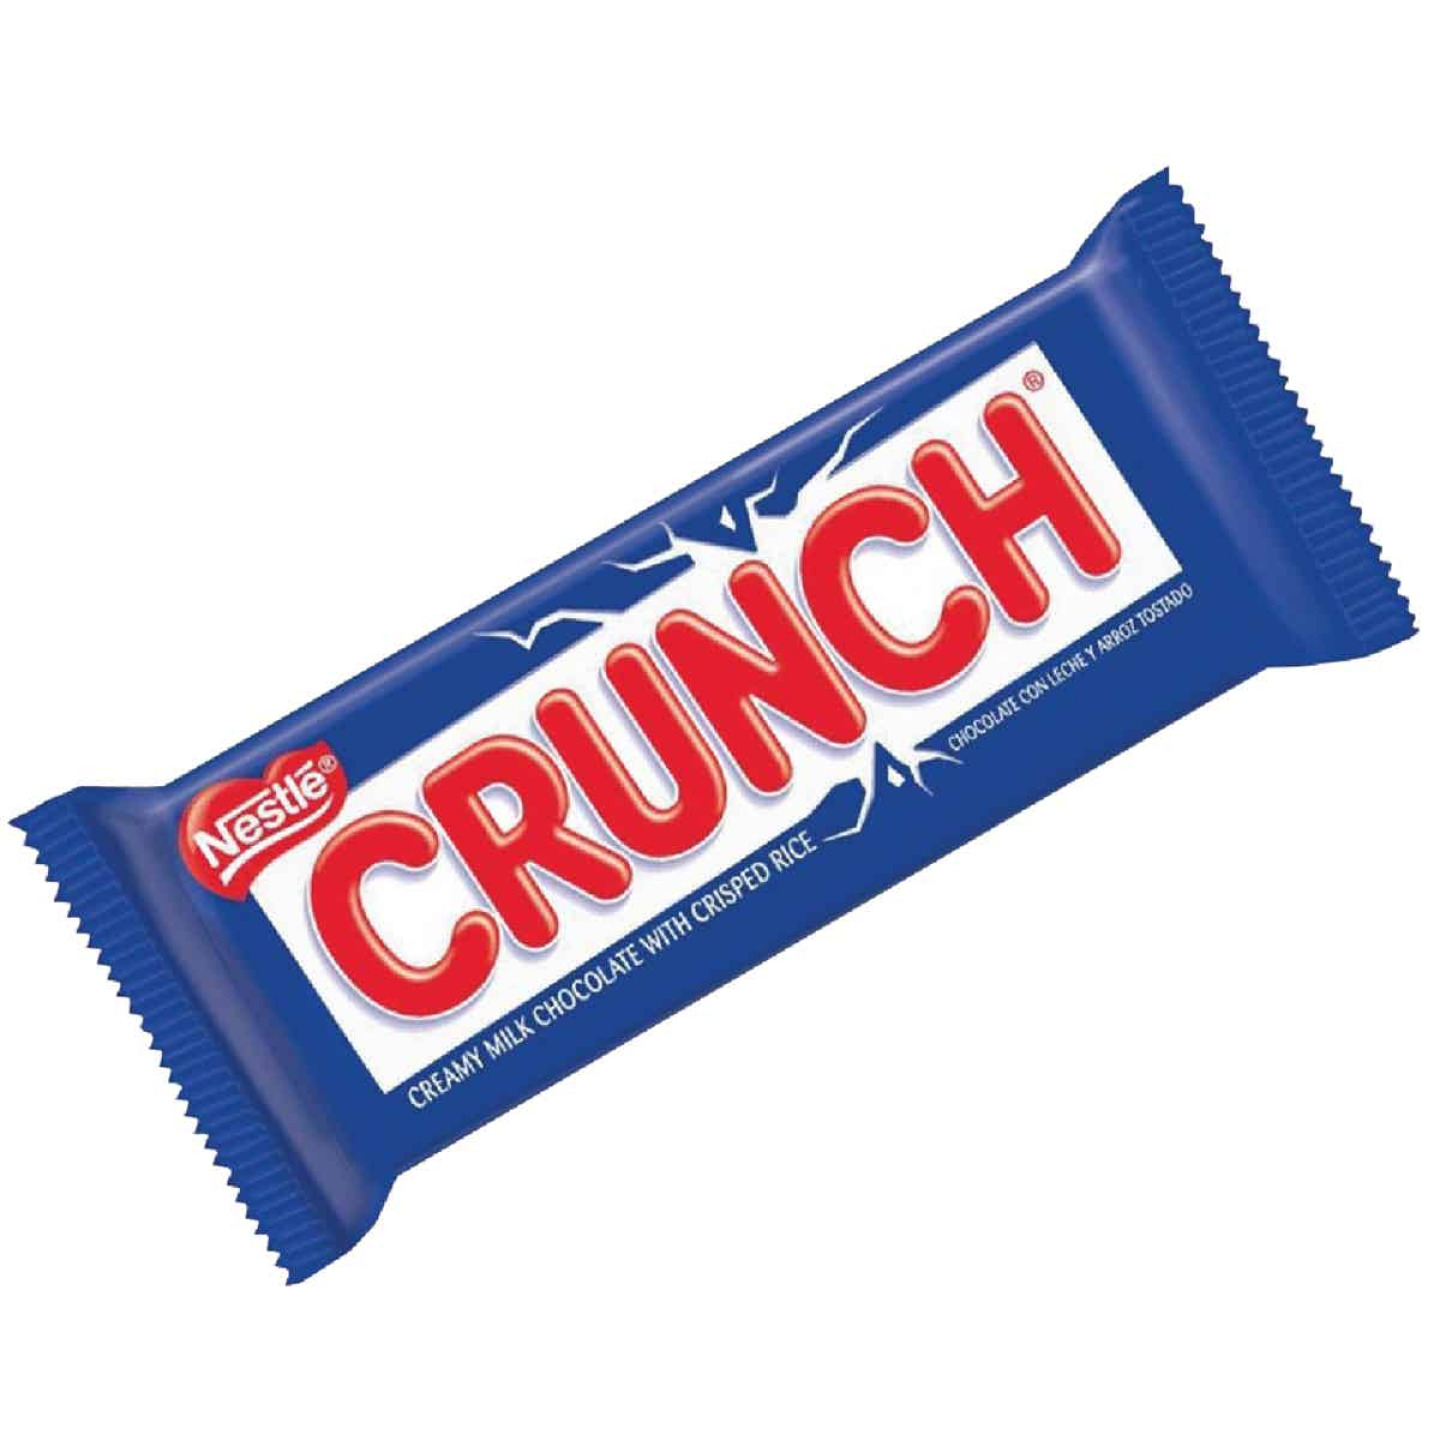 Nestle Crunch 1.55 Oz. Crispy Milk Chocolate Candy Bar Image 1